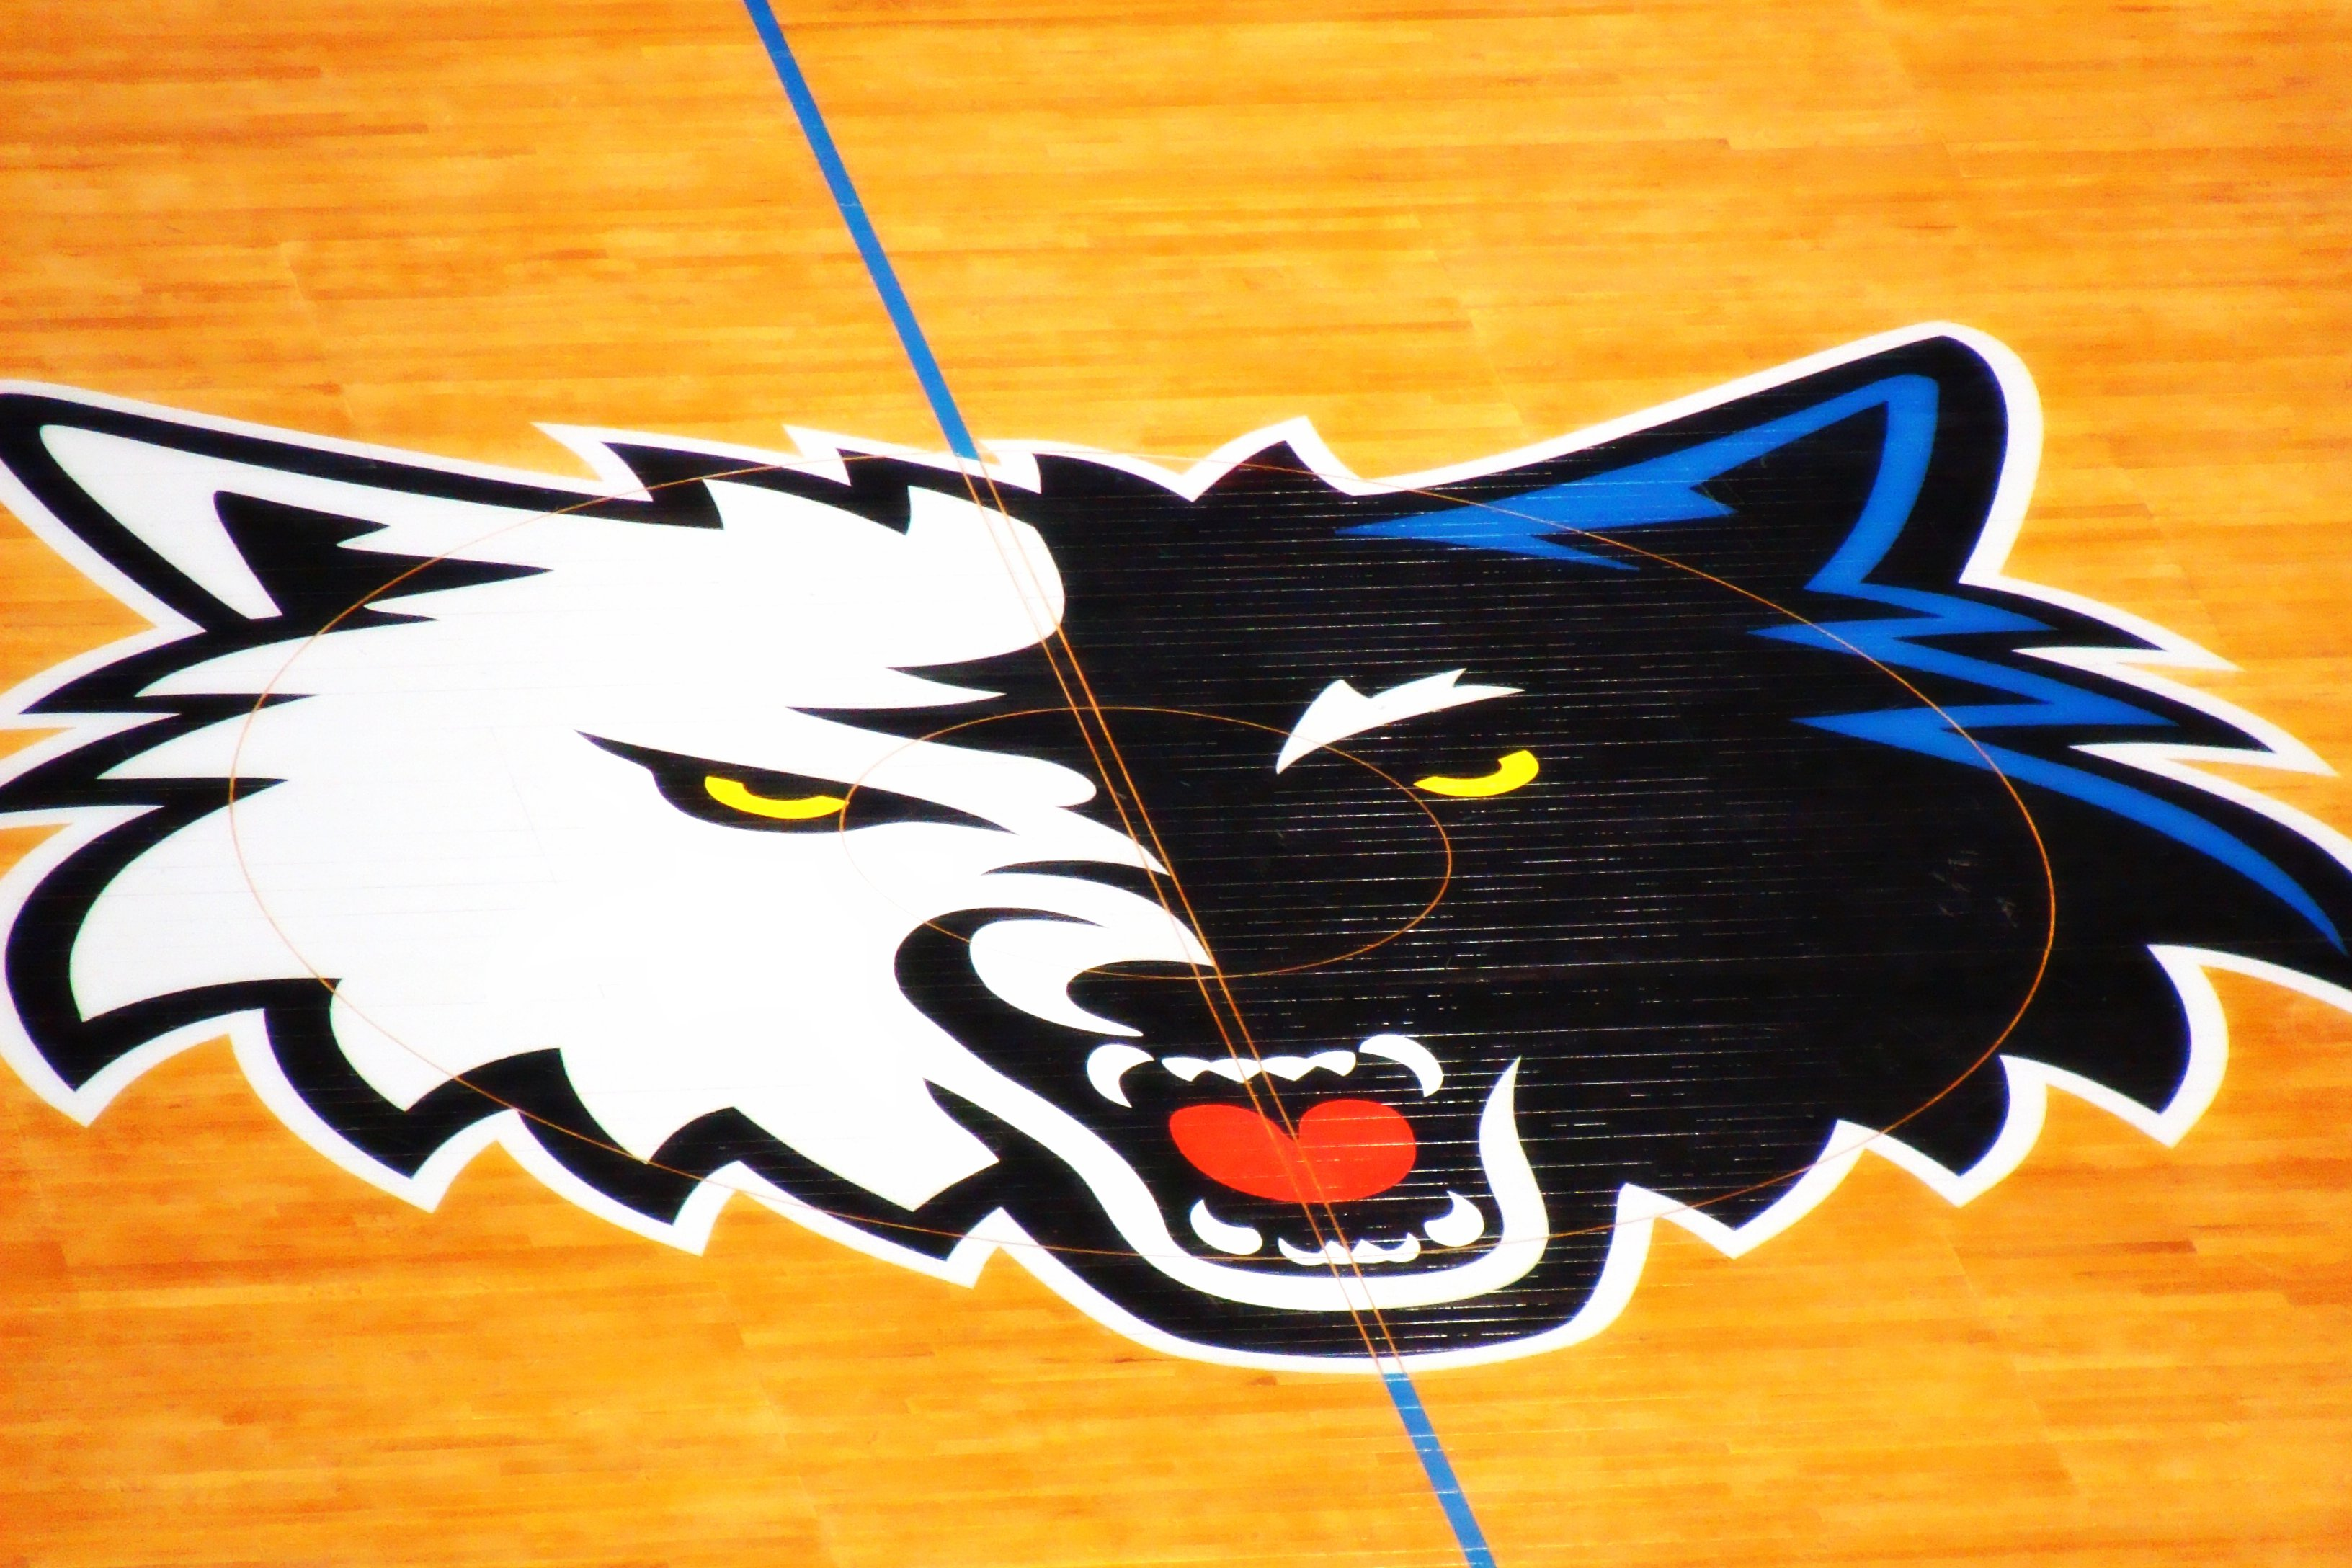 MINNESOTA TIMBERWOLVES nba basketball 29 wallpaper 3264x2176 3264x2176